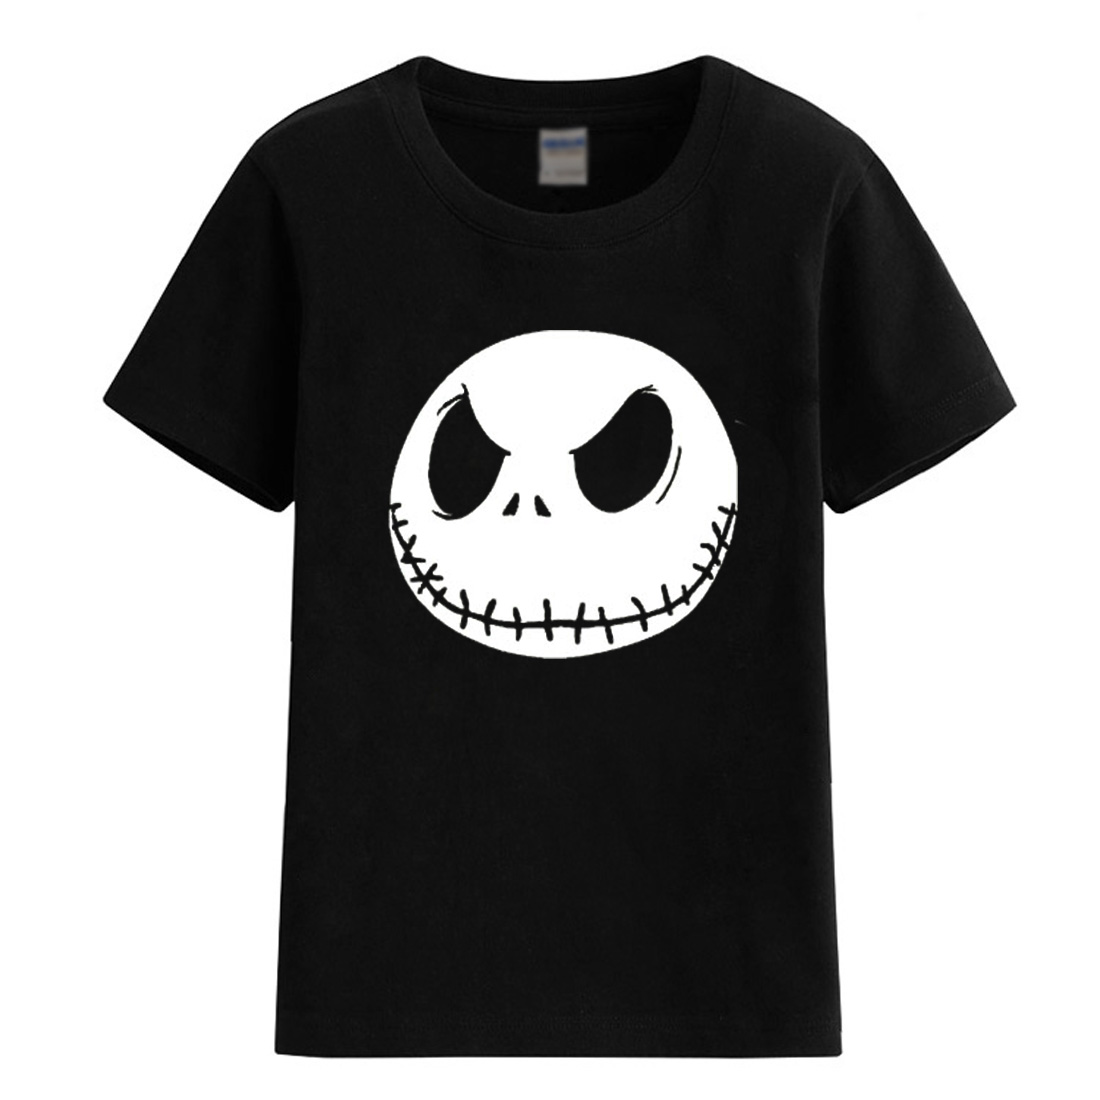 2018 summer T-shirts Jack Skellington Evil Face character pattern T-shirt for girl boy kids clothes fashion cool brand t shirt red stripe pattern off shoulder t shirt with frill details